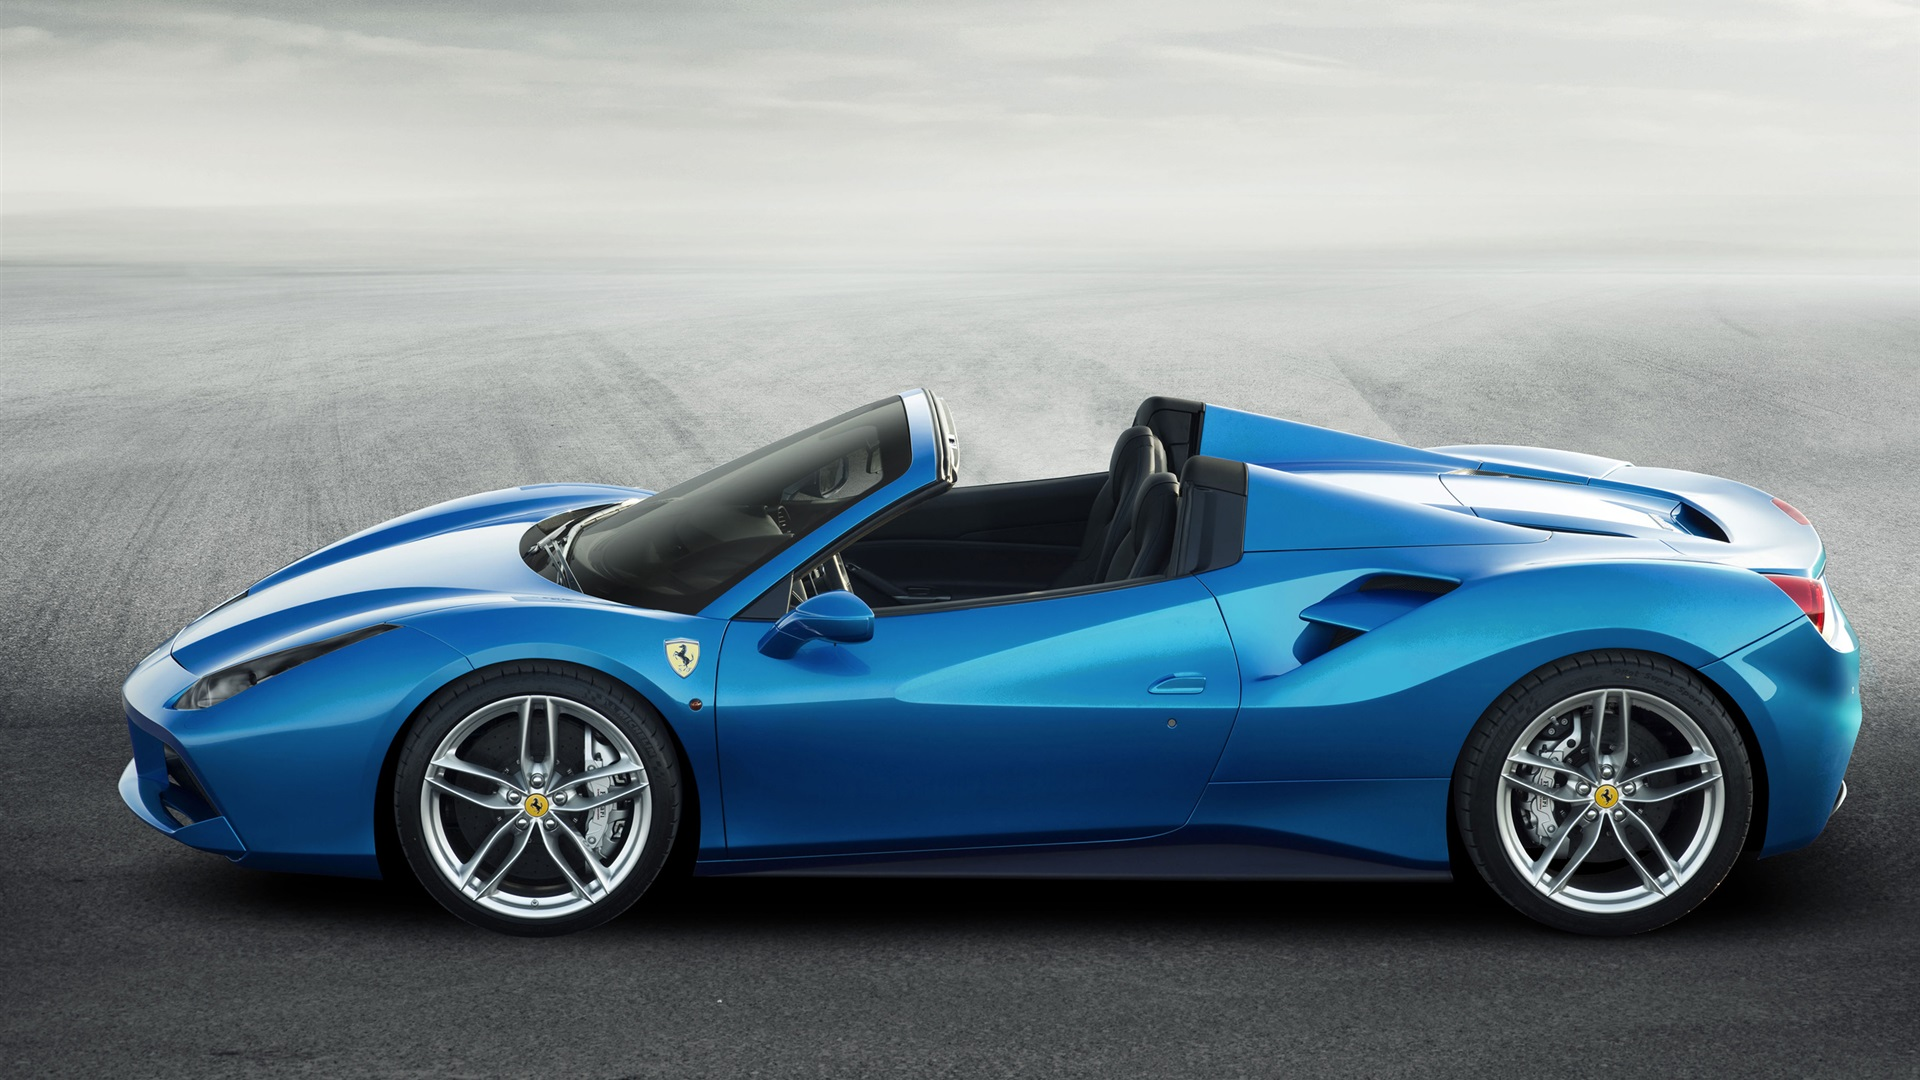 Supar Car Hd Wallpaper Ferrari 488 Ara 241 A Azul Superdeportivo Vista Lateral Fondos